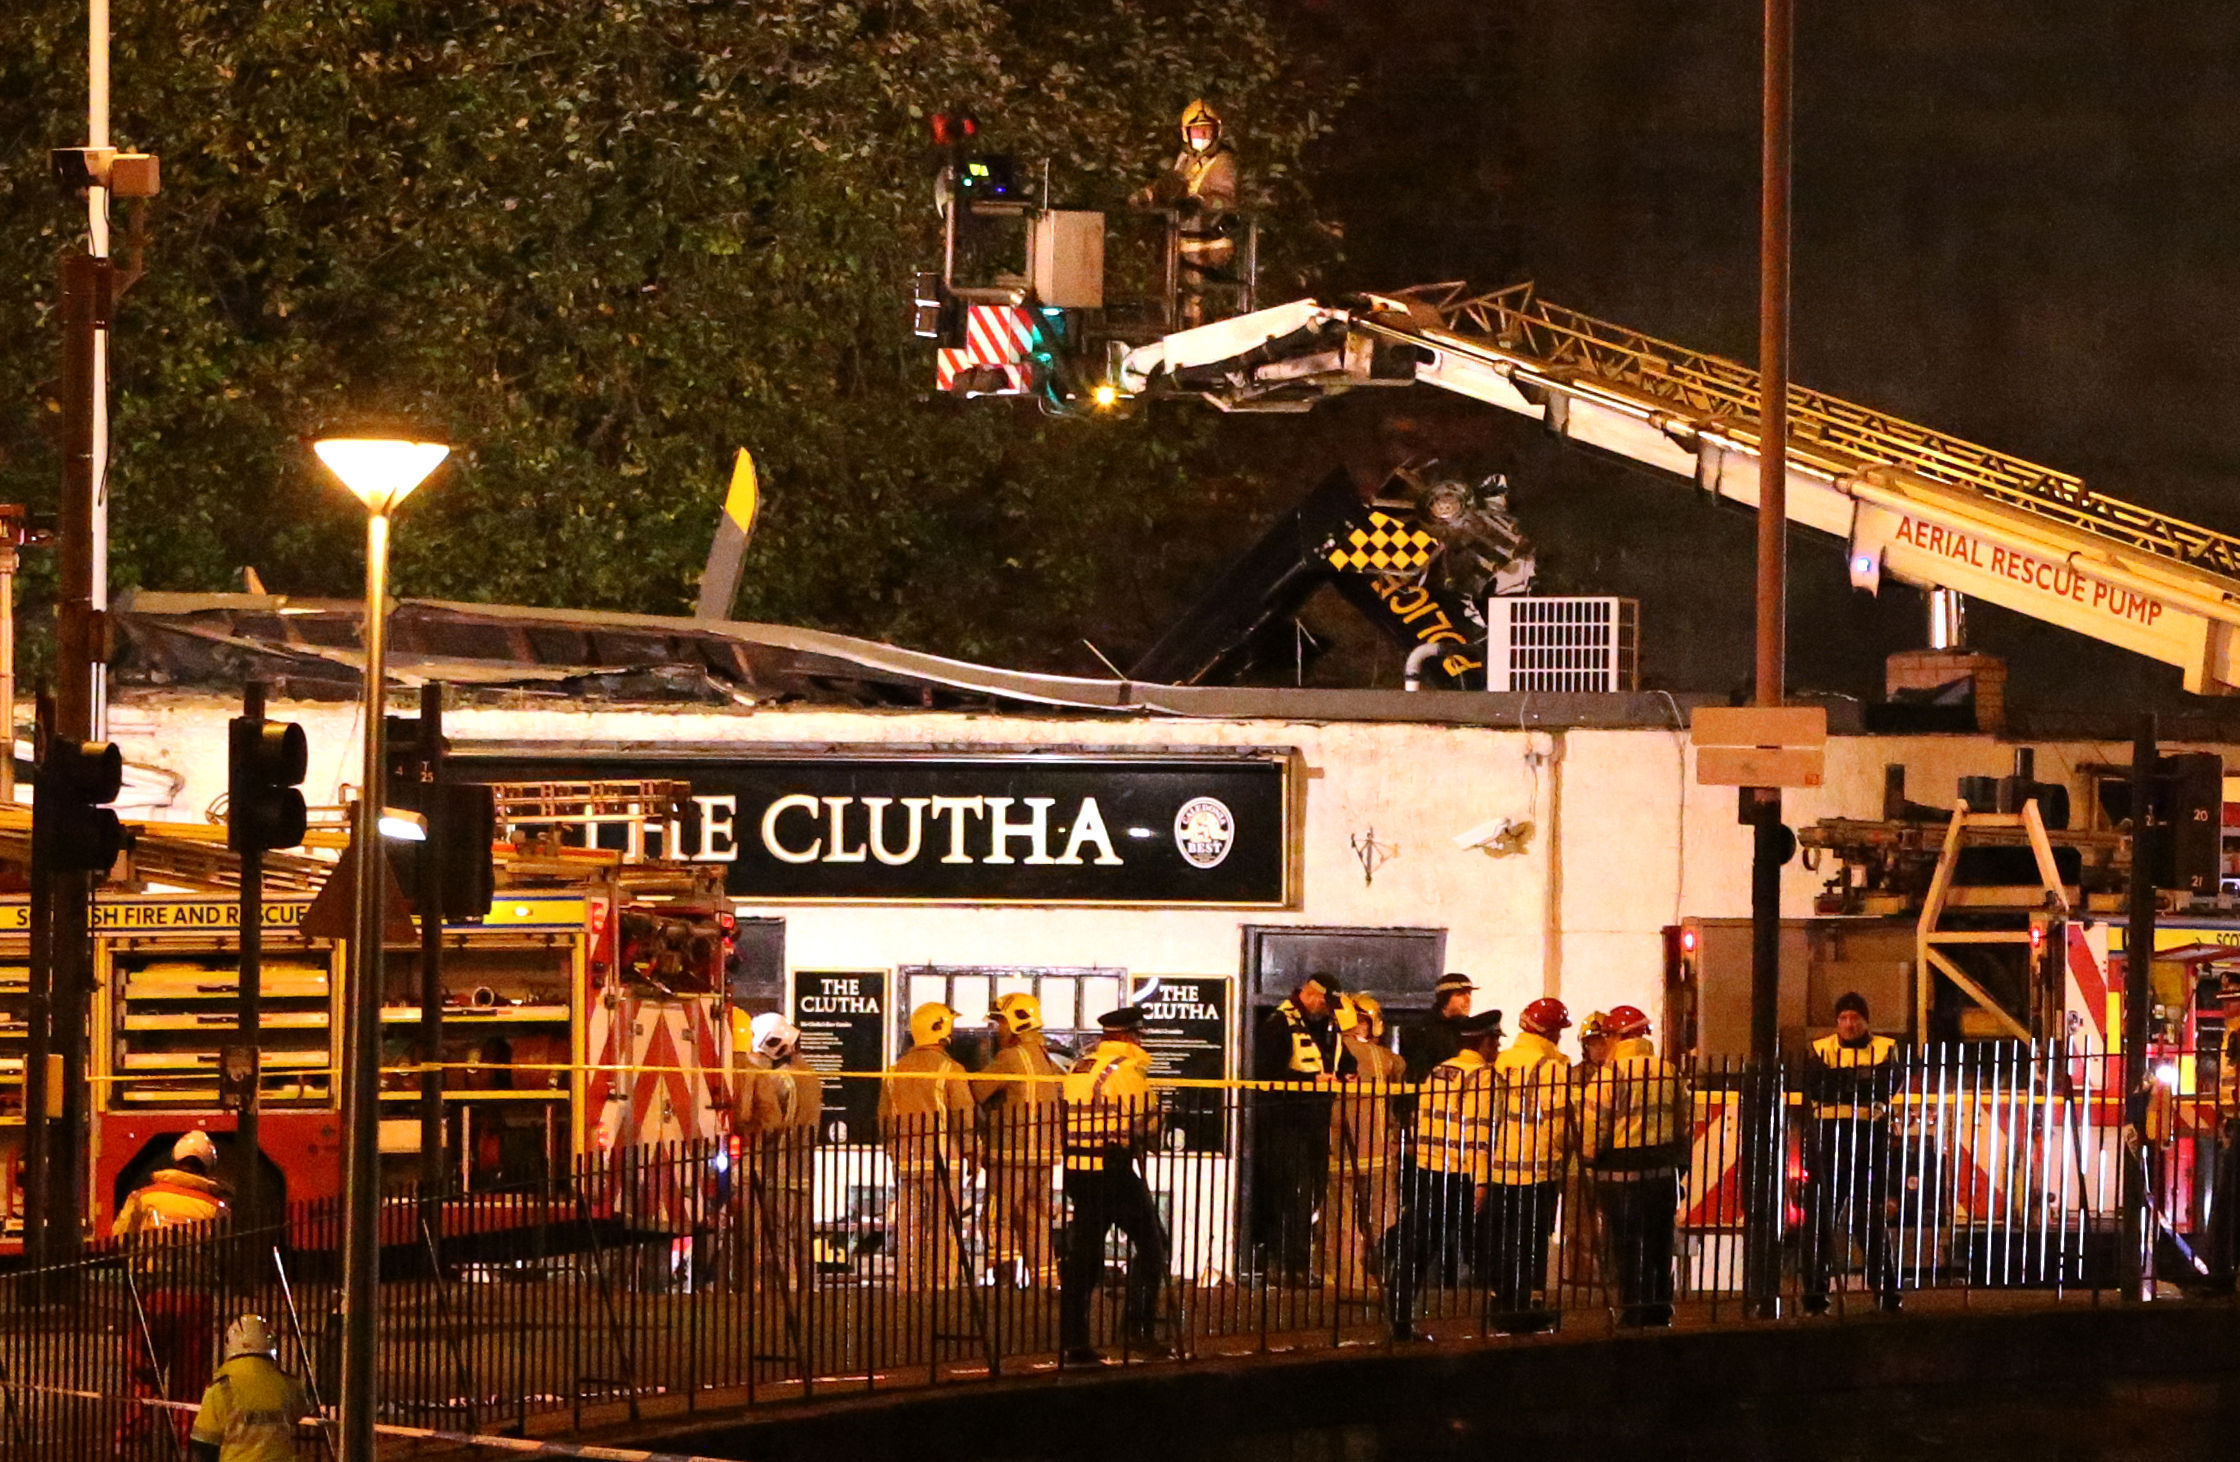 Police and Scottish Fire and Rescue services at the scene of a helicopter crash at the Clutha Bar in Glasgow